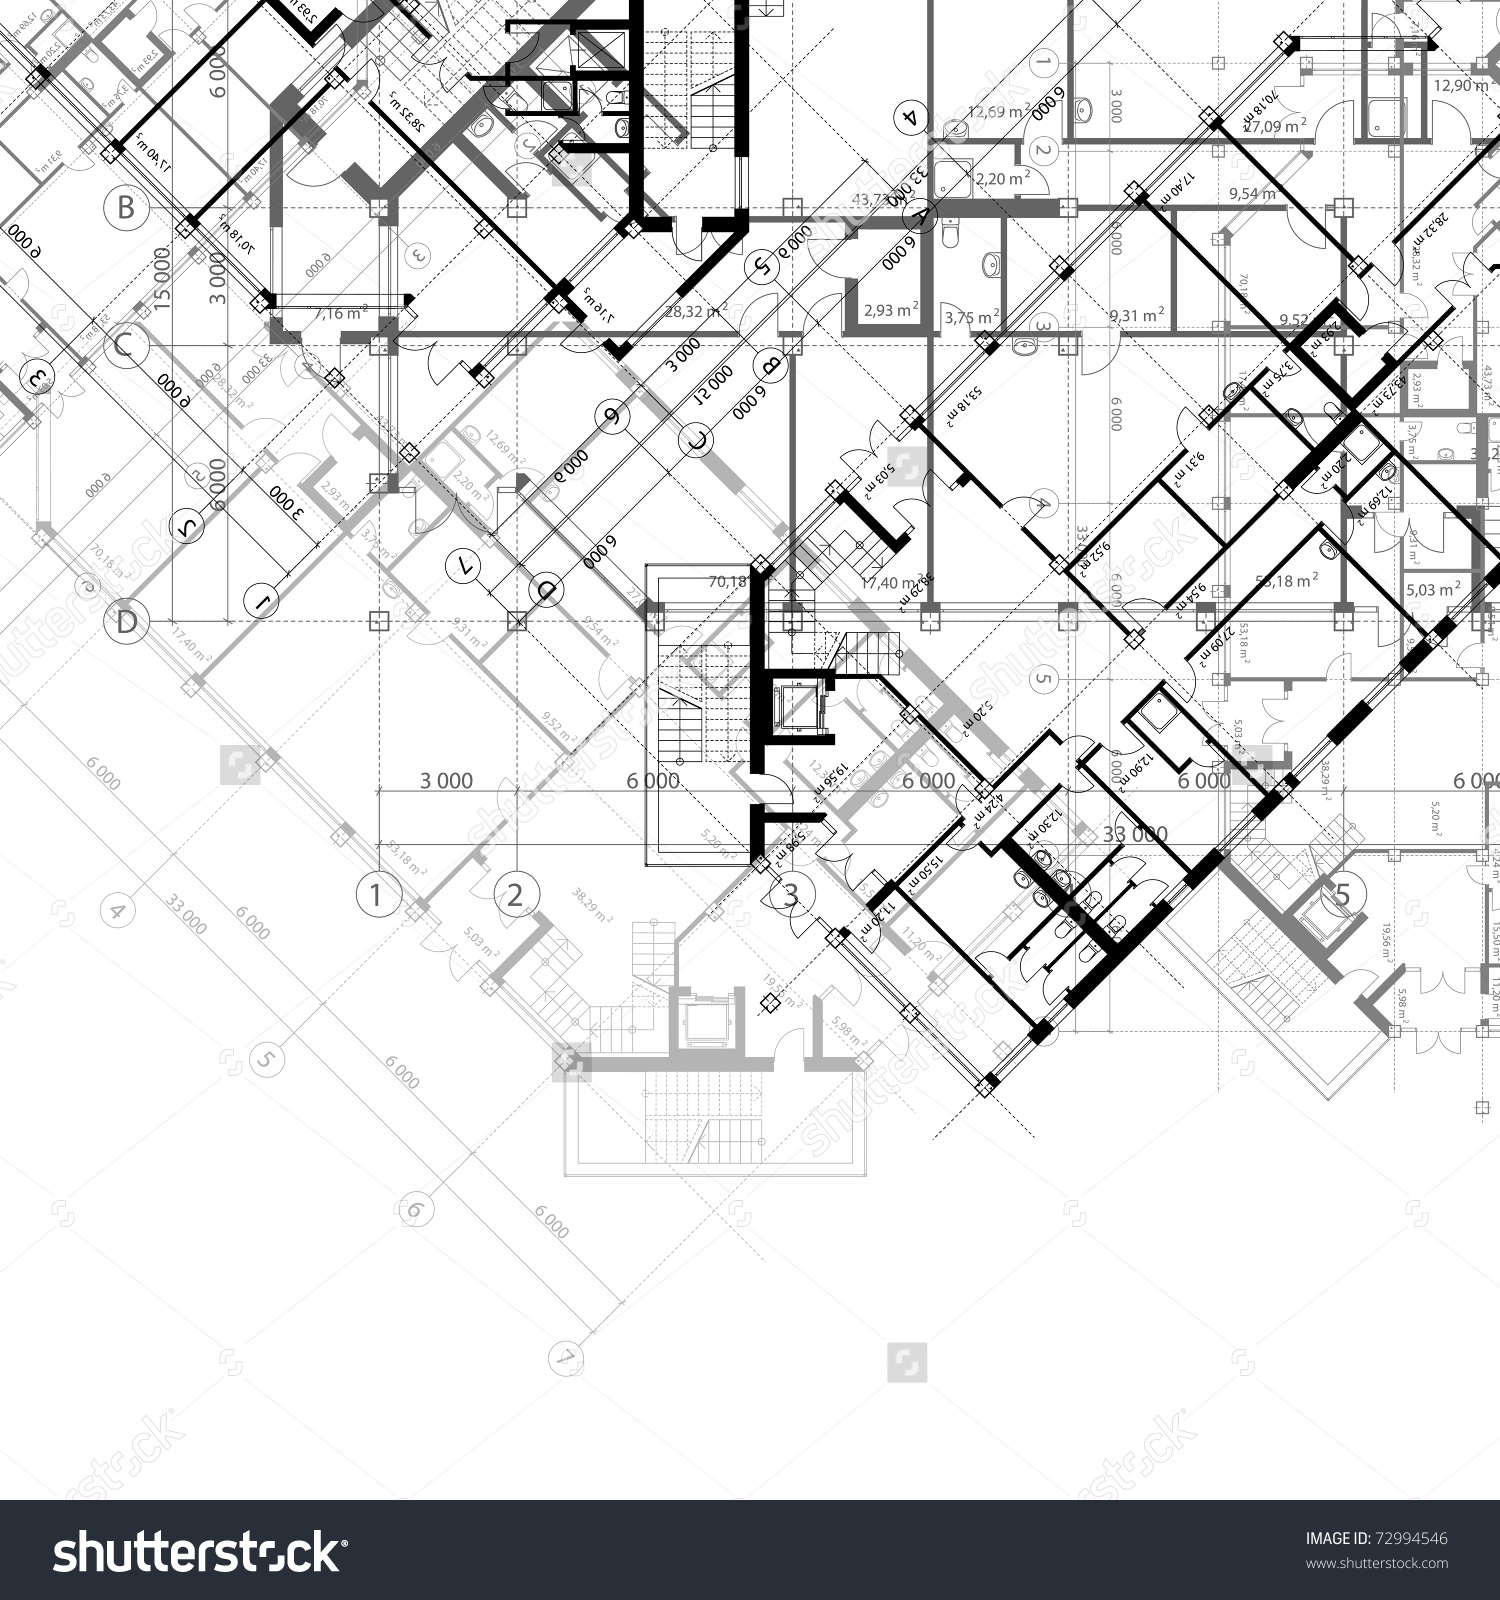 1500x1600 royalty free illustration download hand drawing sketches - Home Construction Diagram